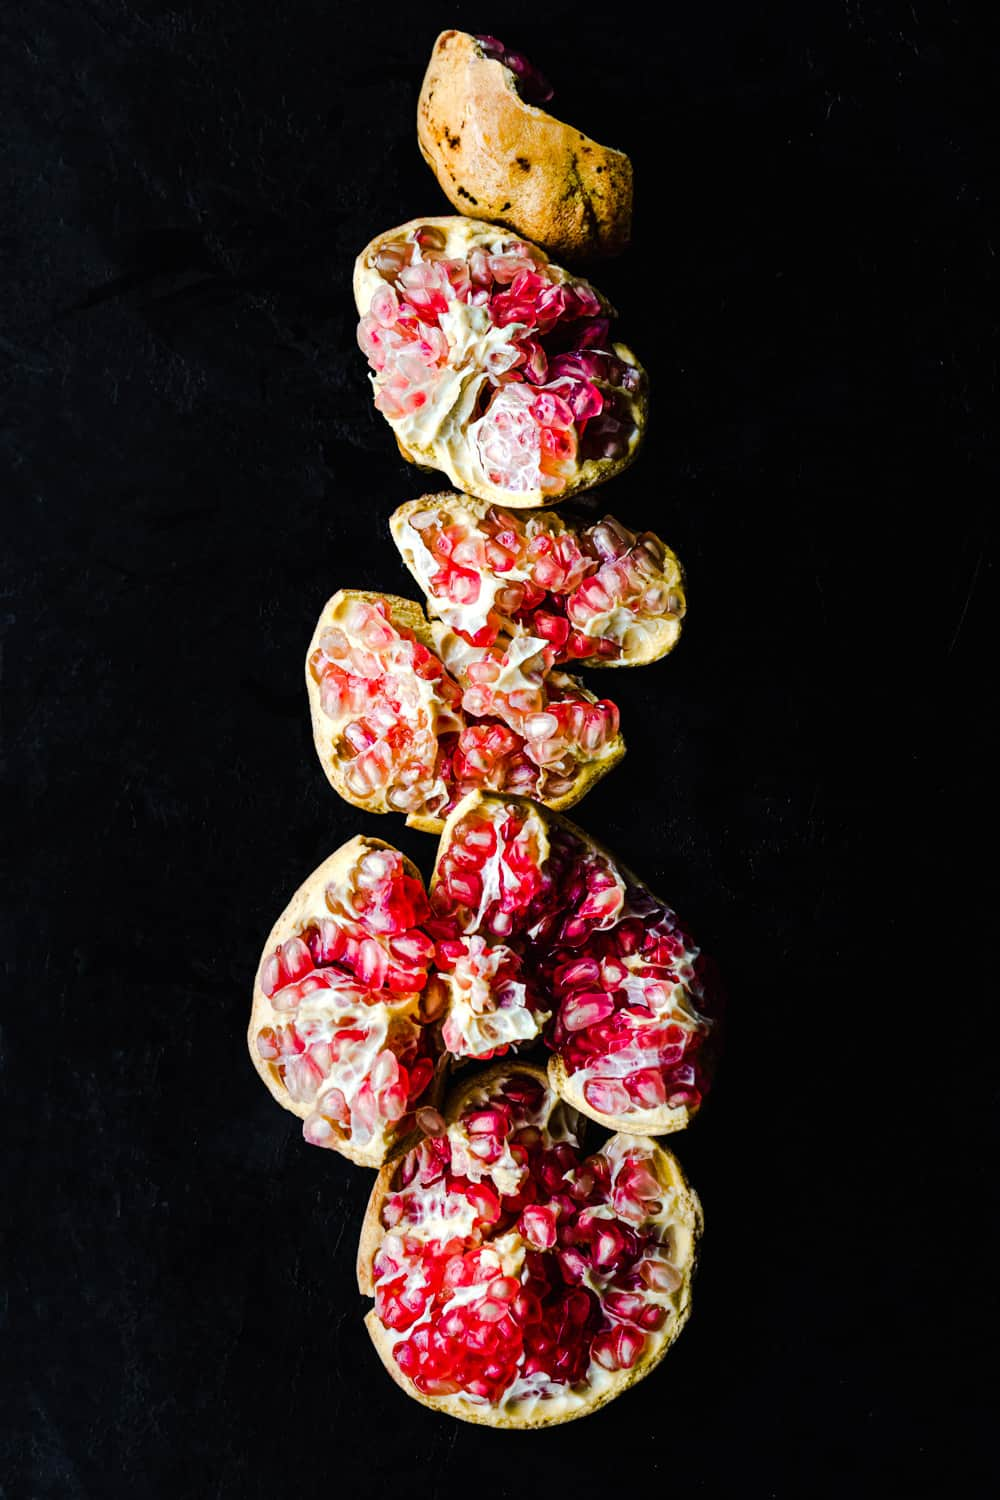 A white pomegranate with pink arils! Cut until pieces and arranged in a vertical l one, cut side up; overhead shot on a black background.